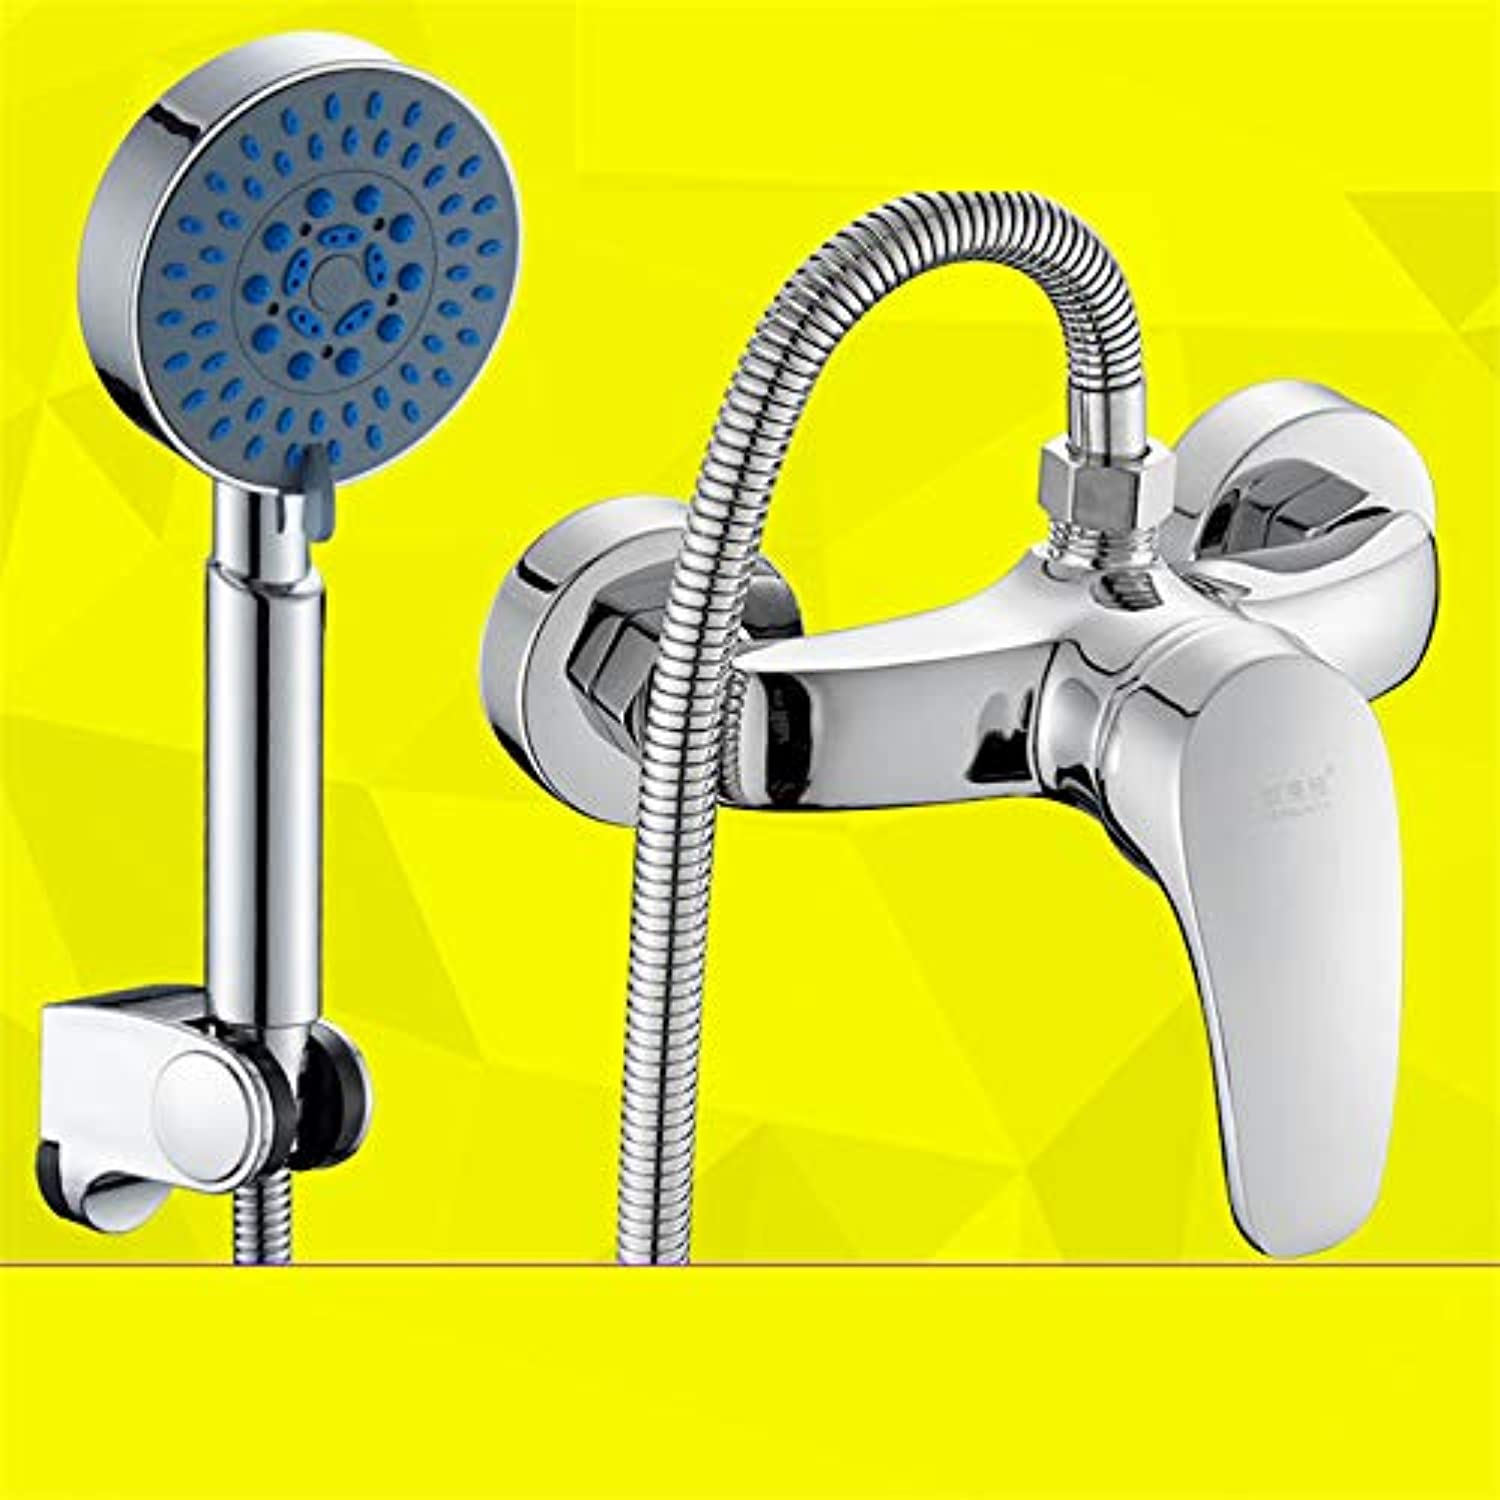 redOOY Taps Copper Shower Faucet Bathroom Hot And Cold Water Faucet Shower Mixing Valve Concealed B